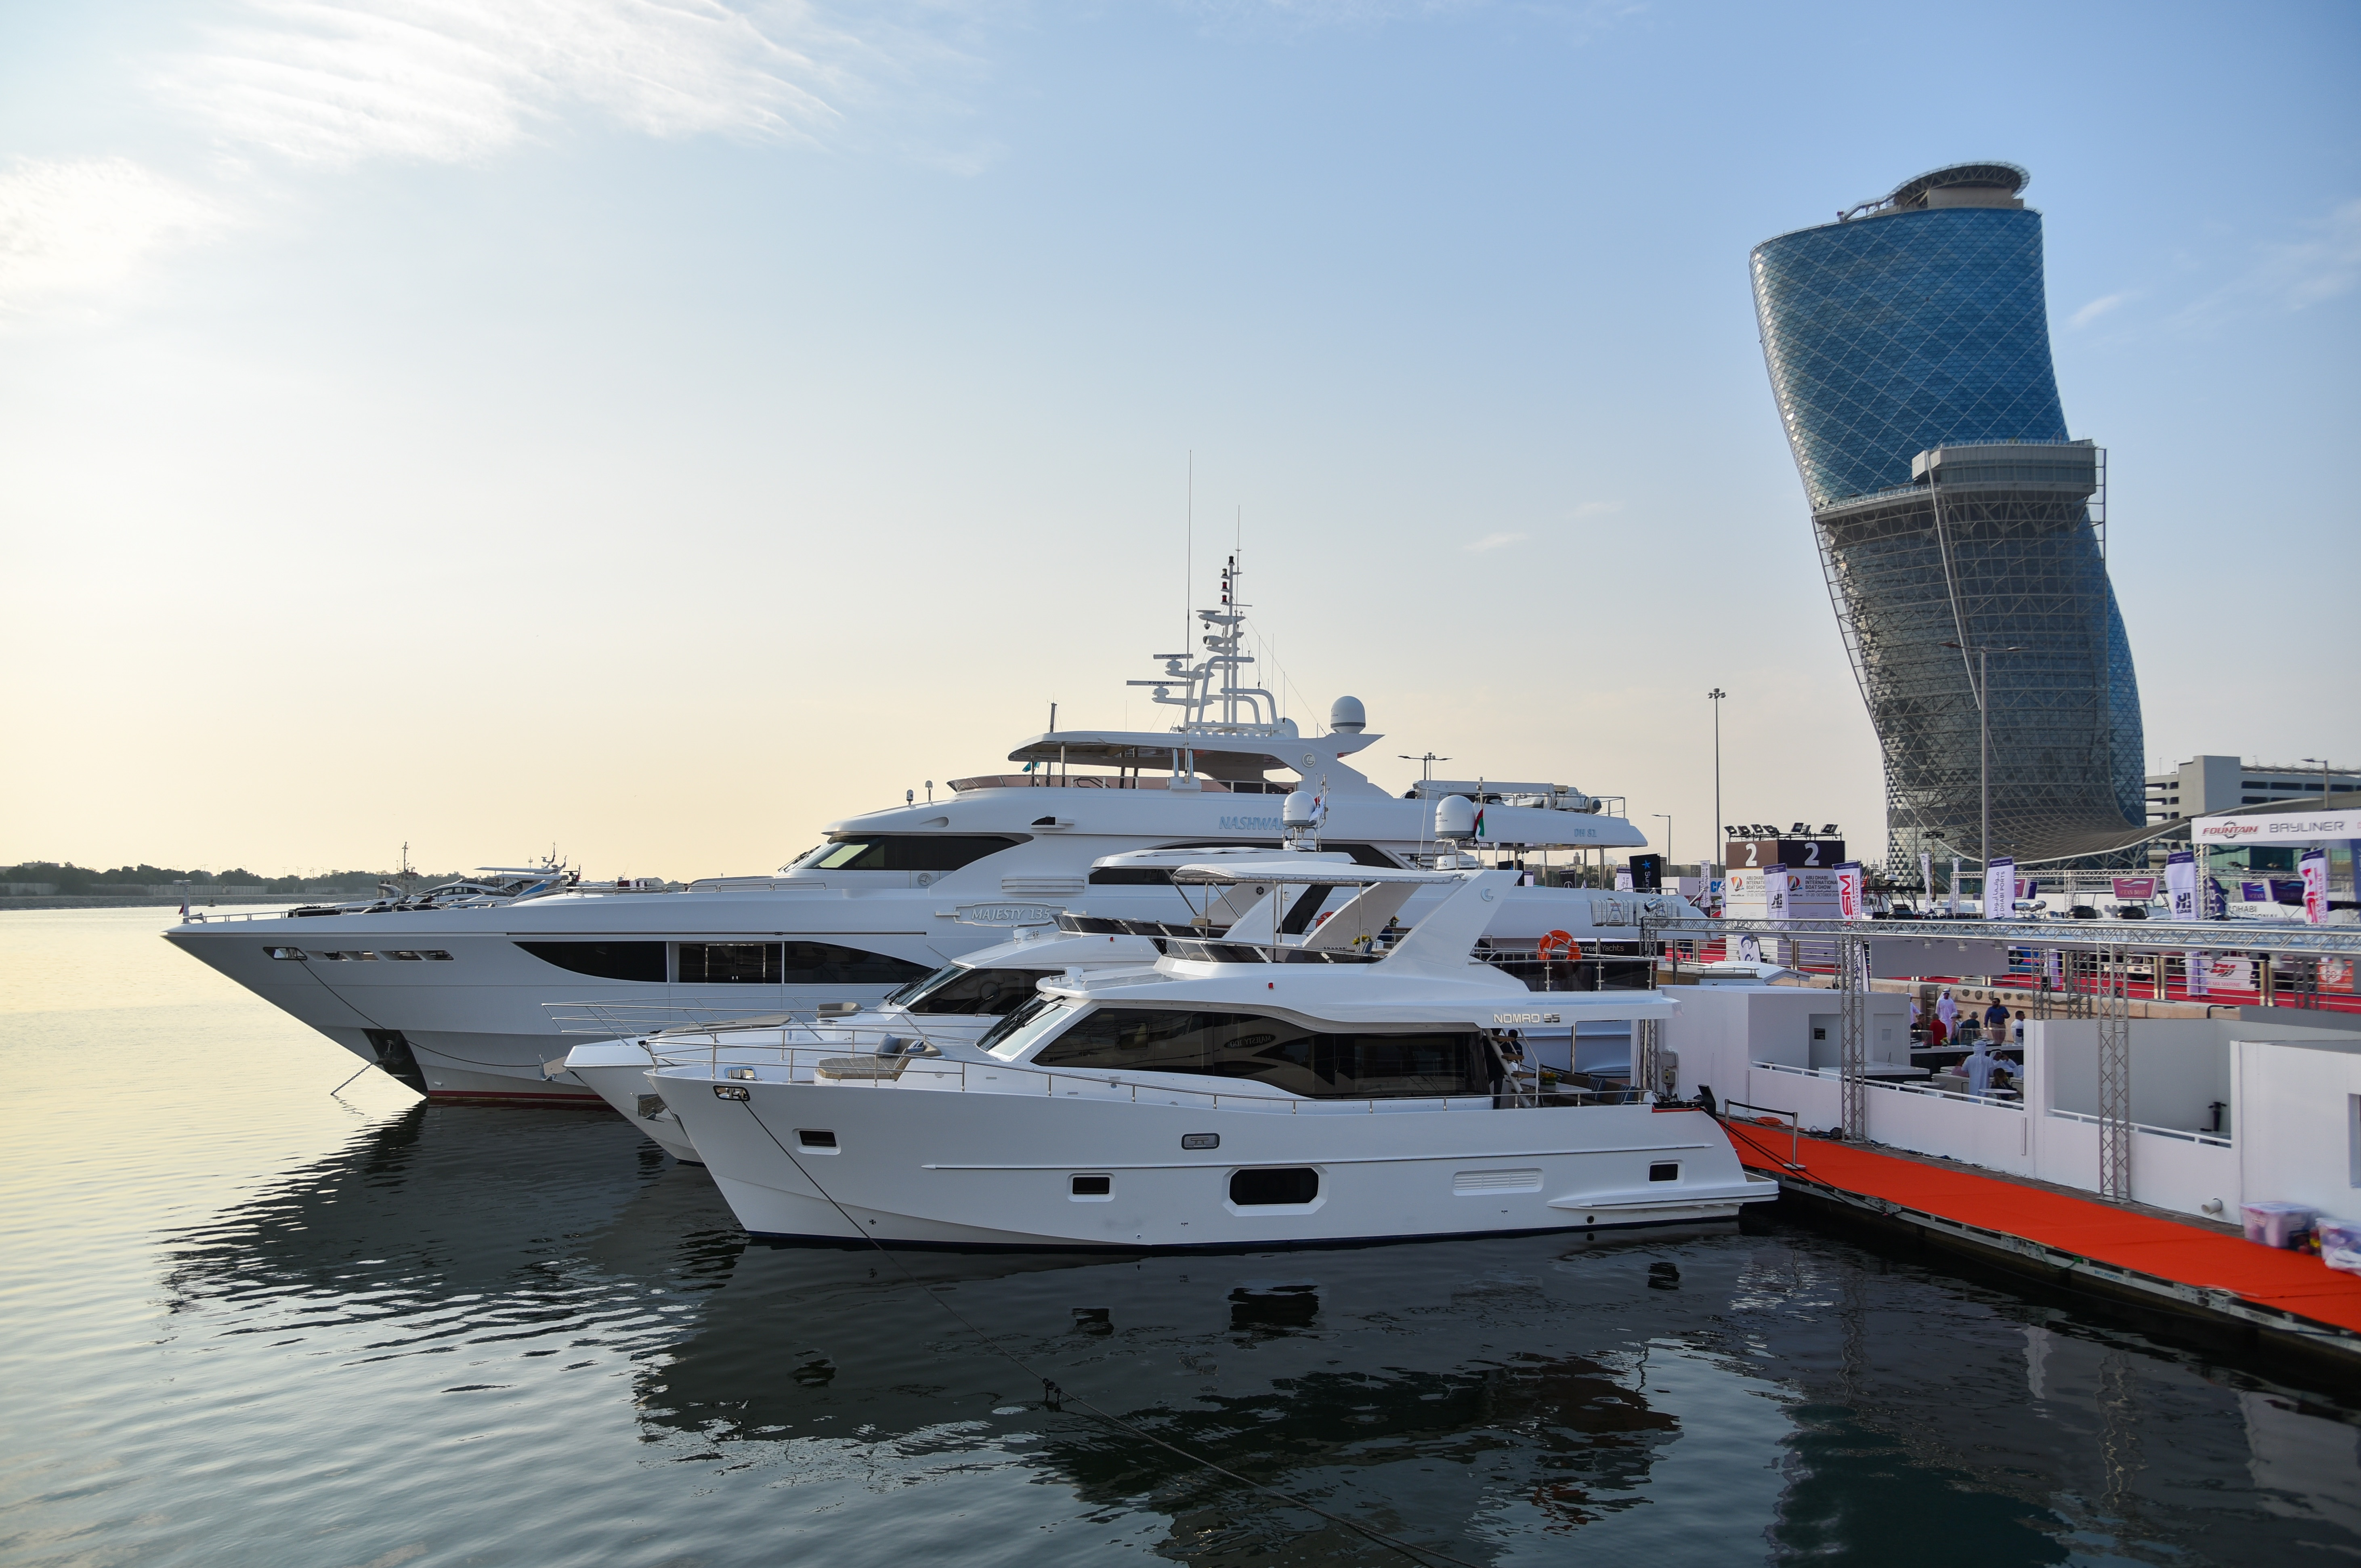 Gulf Craft at Abu Dhabi Boat Show 2018 Day 2 (2).jpg